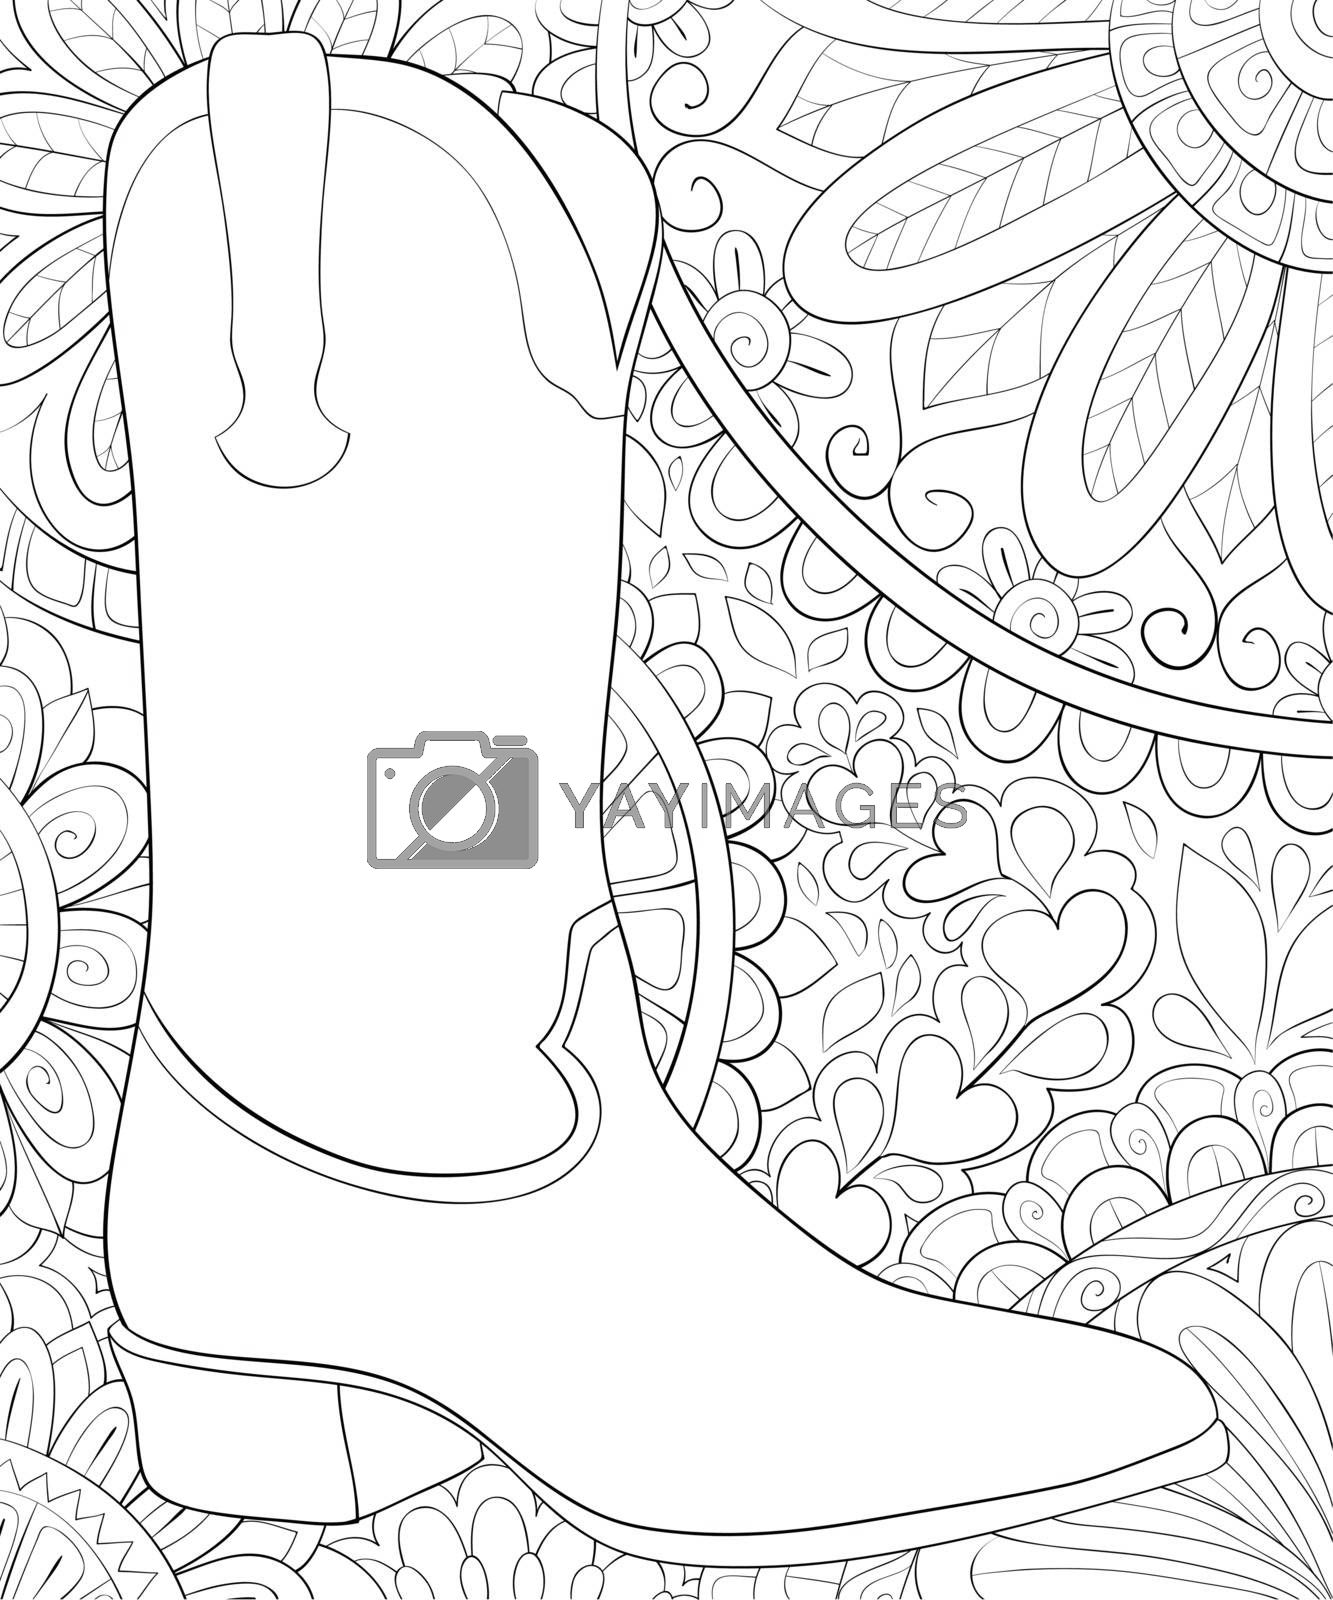 A cute boot on the abstract background with ornaments image for relaxing activity.Coloring book,page for adults.Zen art style illustration for print.Poster design.